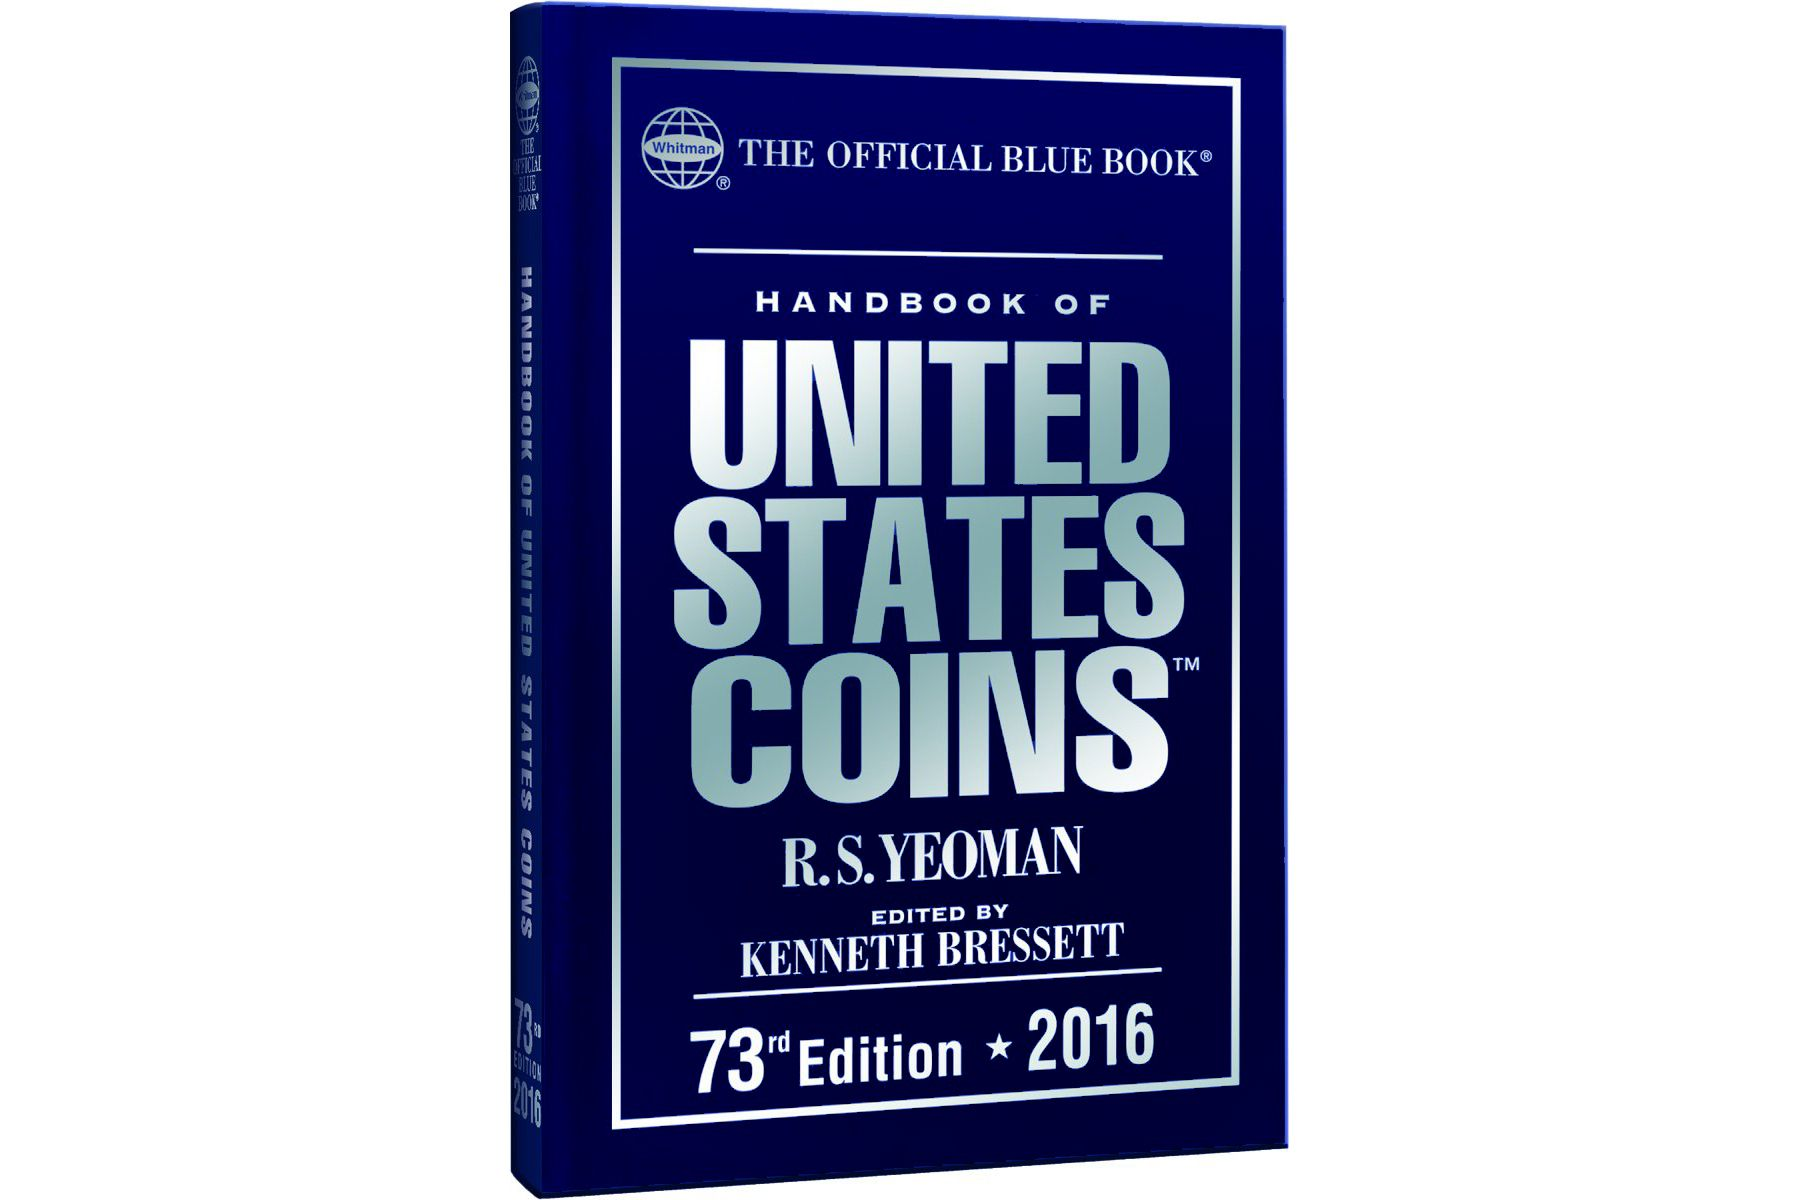 a handbook of United States coins, by RS Yeoman, edited by Kenneth Bressett